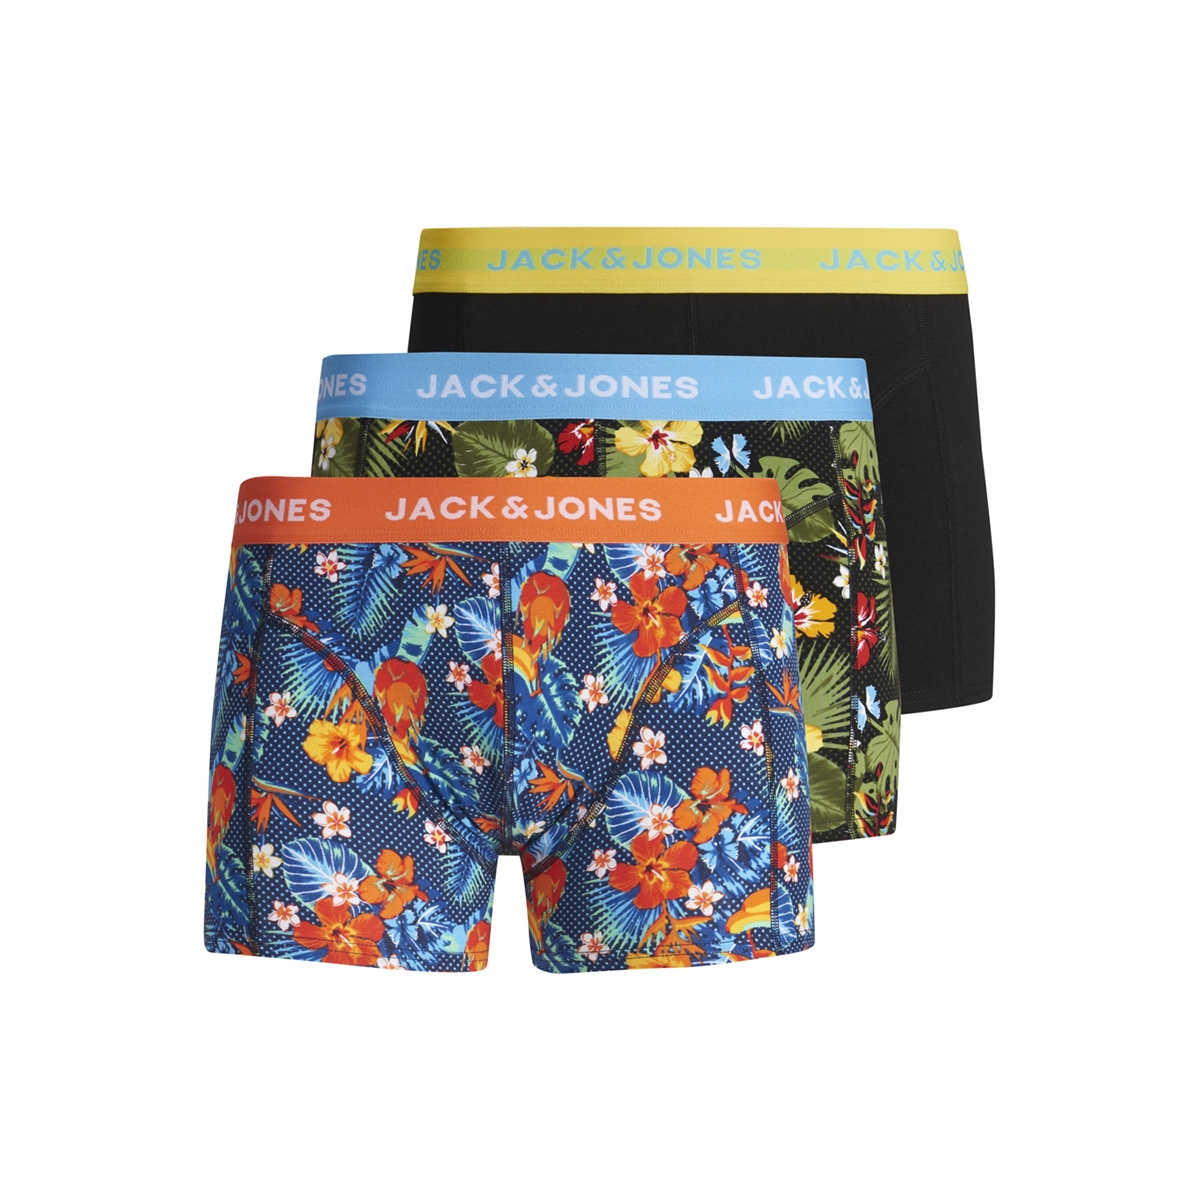 jaccrazy flower print trunks 3 p 12154176 jack & jones ondergoed fiery red